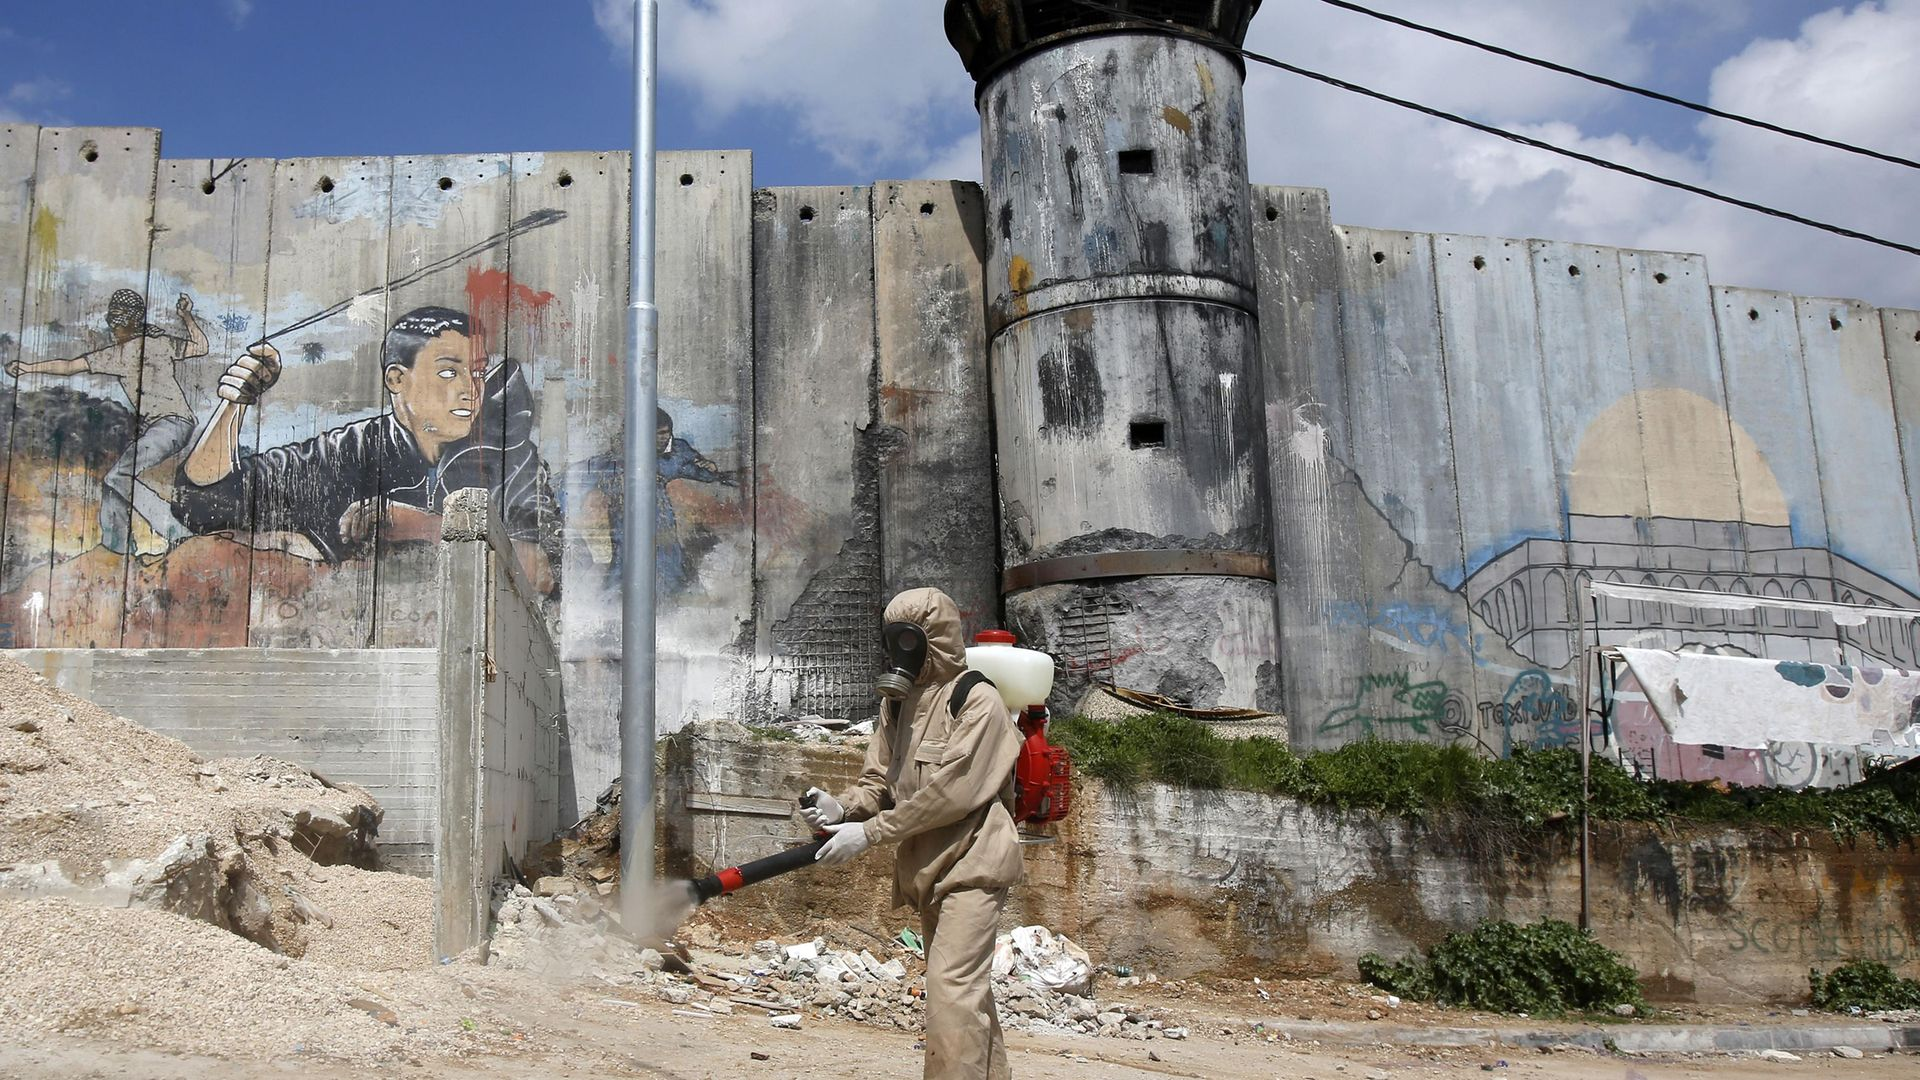 Bedlam or Bethlehem? In this apocalyptic image, a Palestinian sanitary department worker sprays disinfectant along a security border in Bethlehem, during the pandemic - Credit: AFP via Getty Images